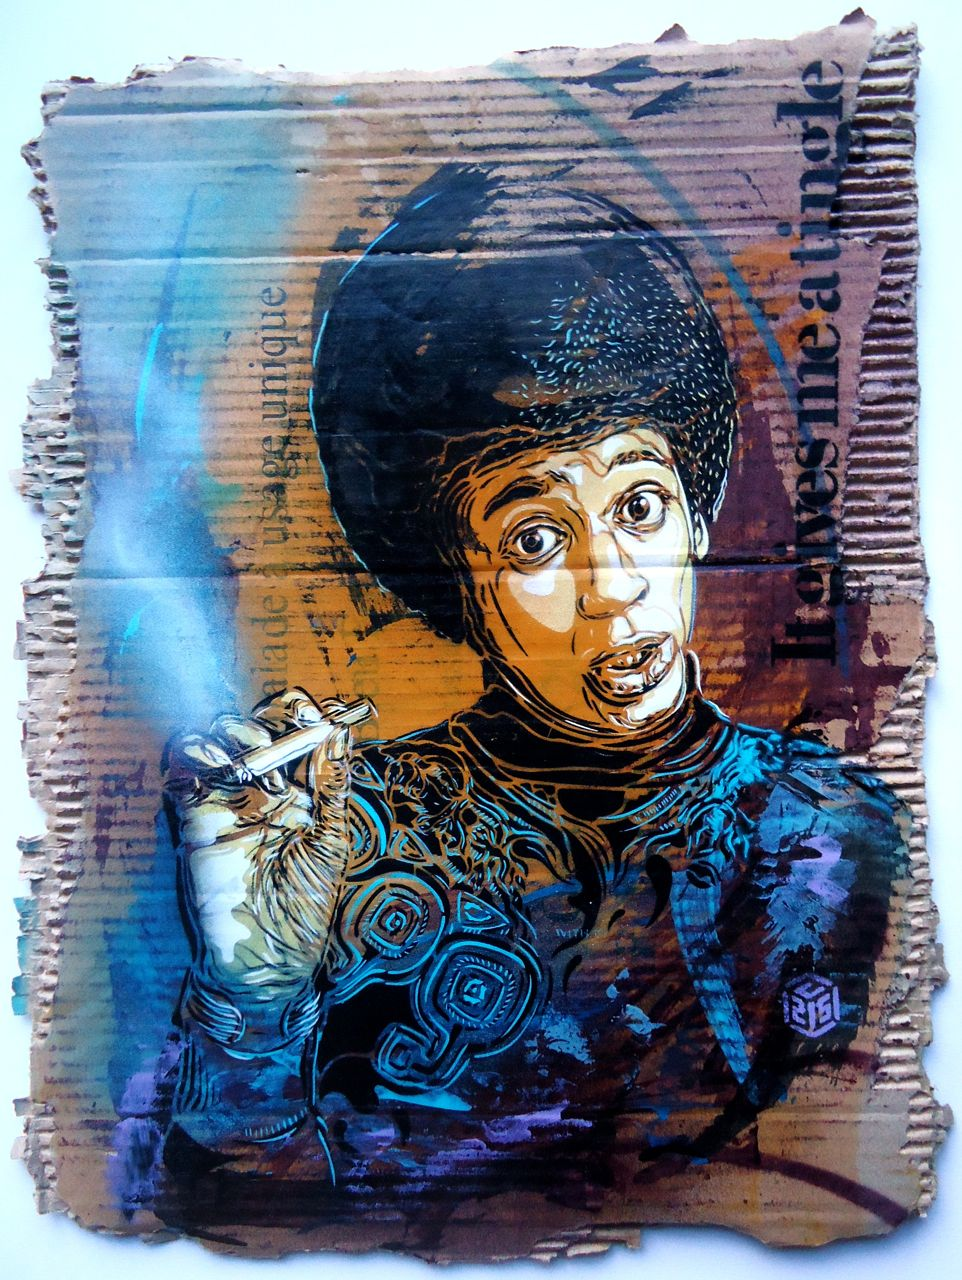 C215 - smoke gets in your eyes